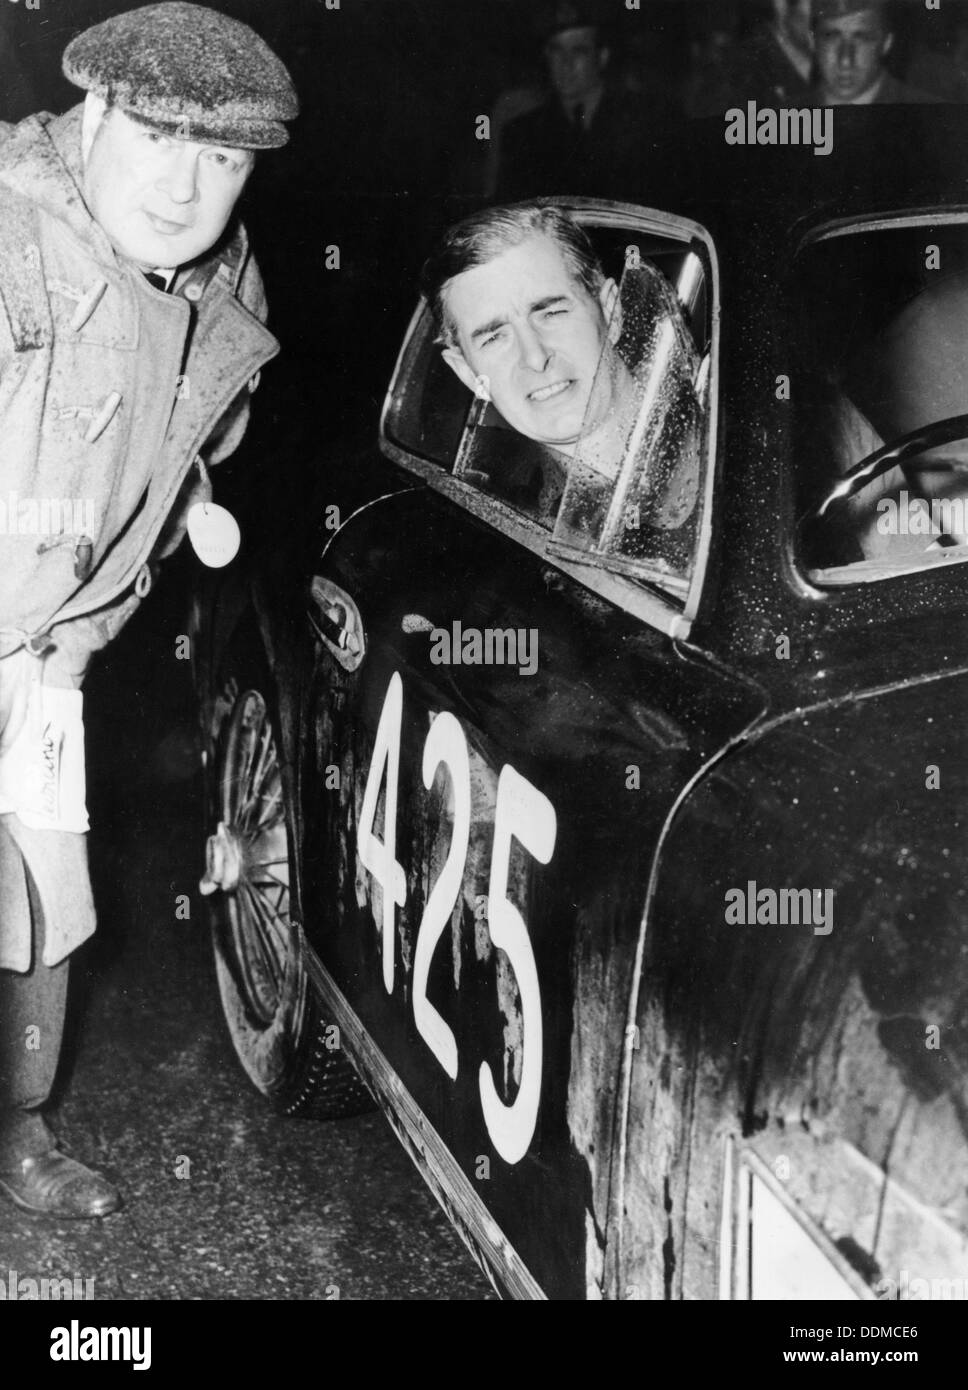 Tommy Wisdom, winner of the Grand Turismo Class of the Mille Miglia, 1951. - Stock Image